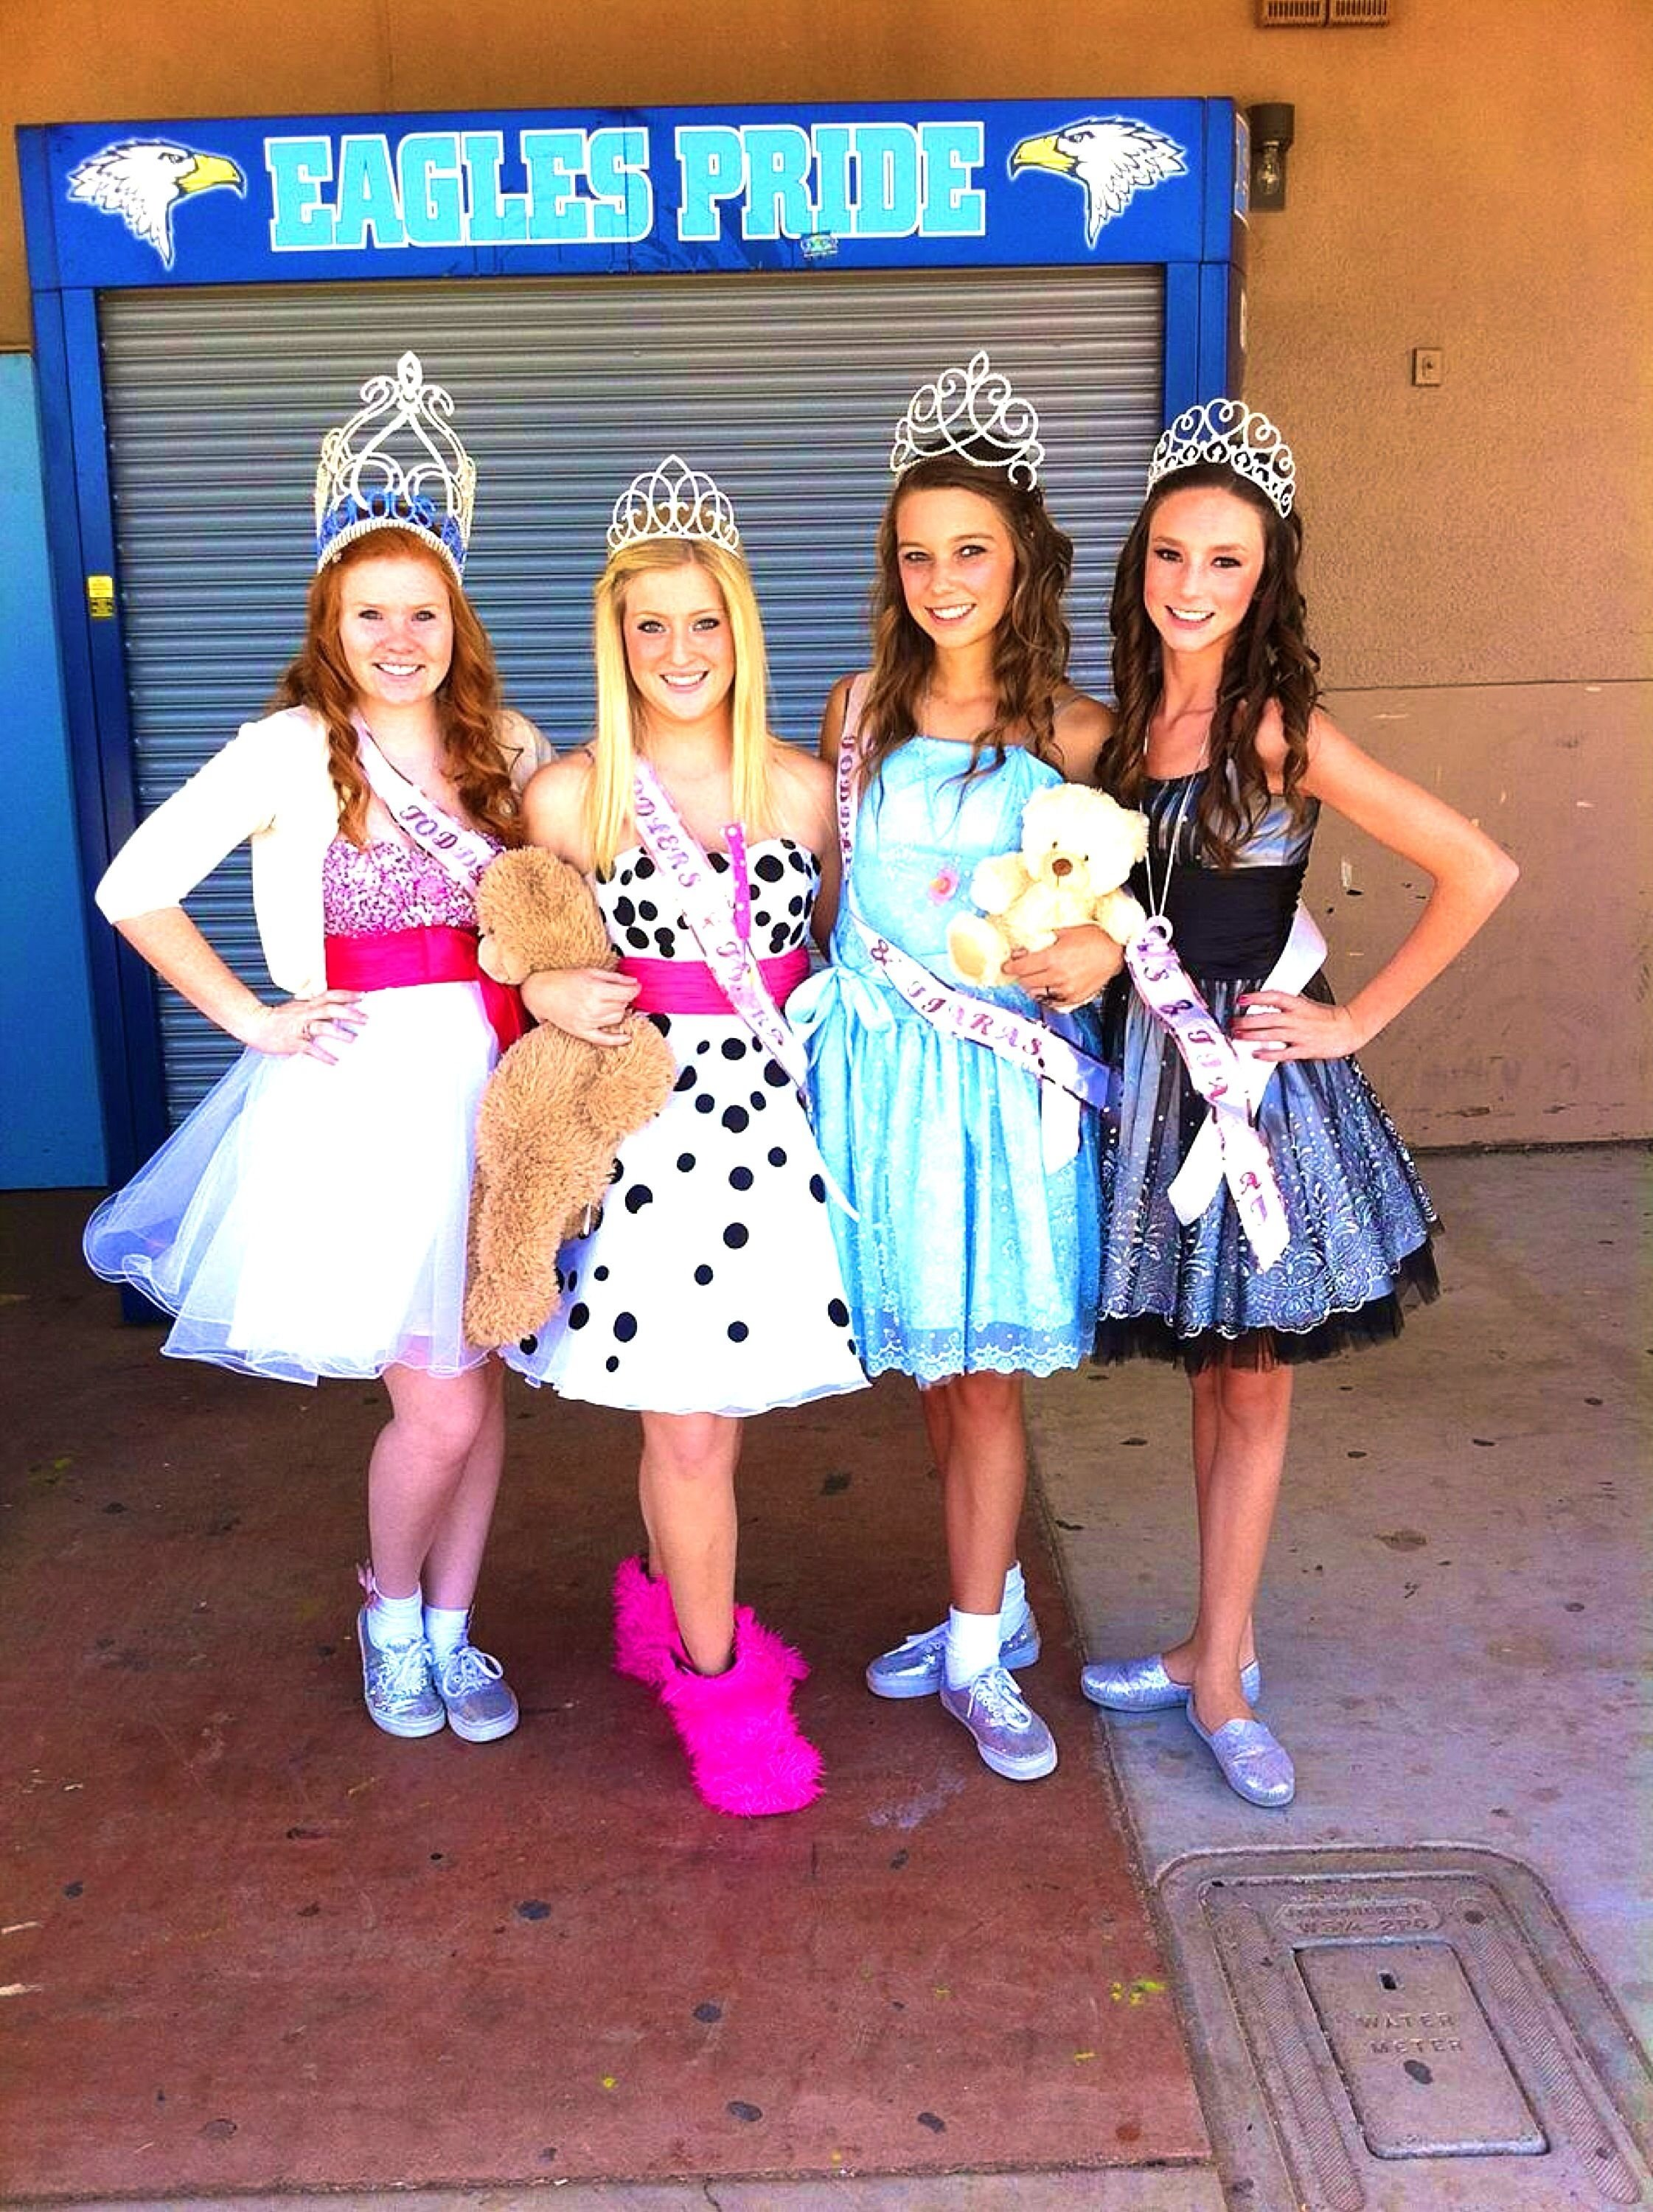 10 Lovable Creative Group Halloween Costume Ideas creative halloween costumes group best friends toddlers and tiaras 2020